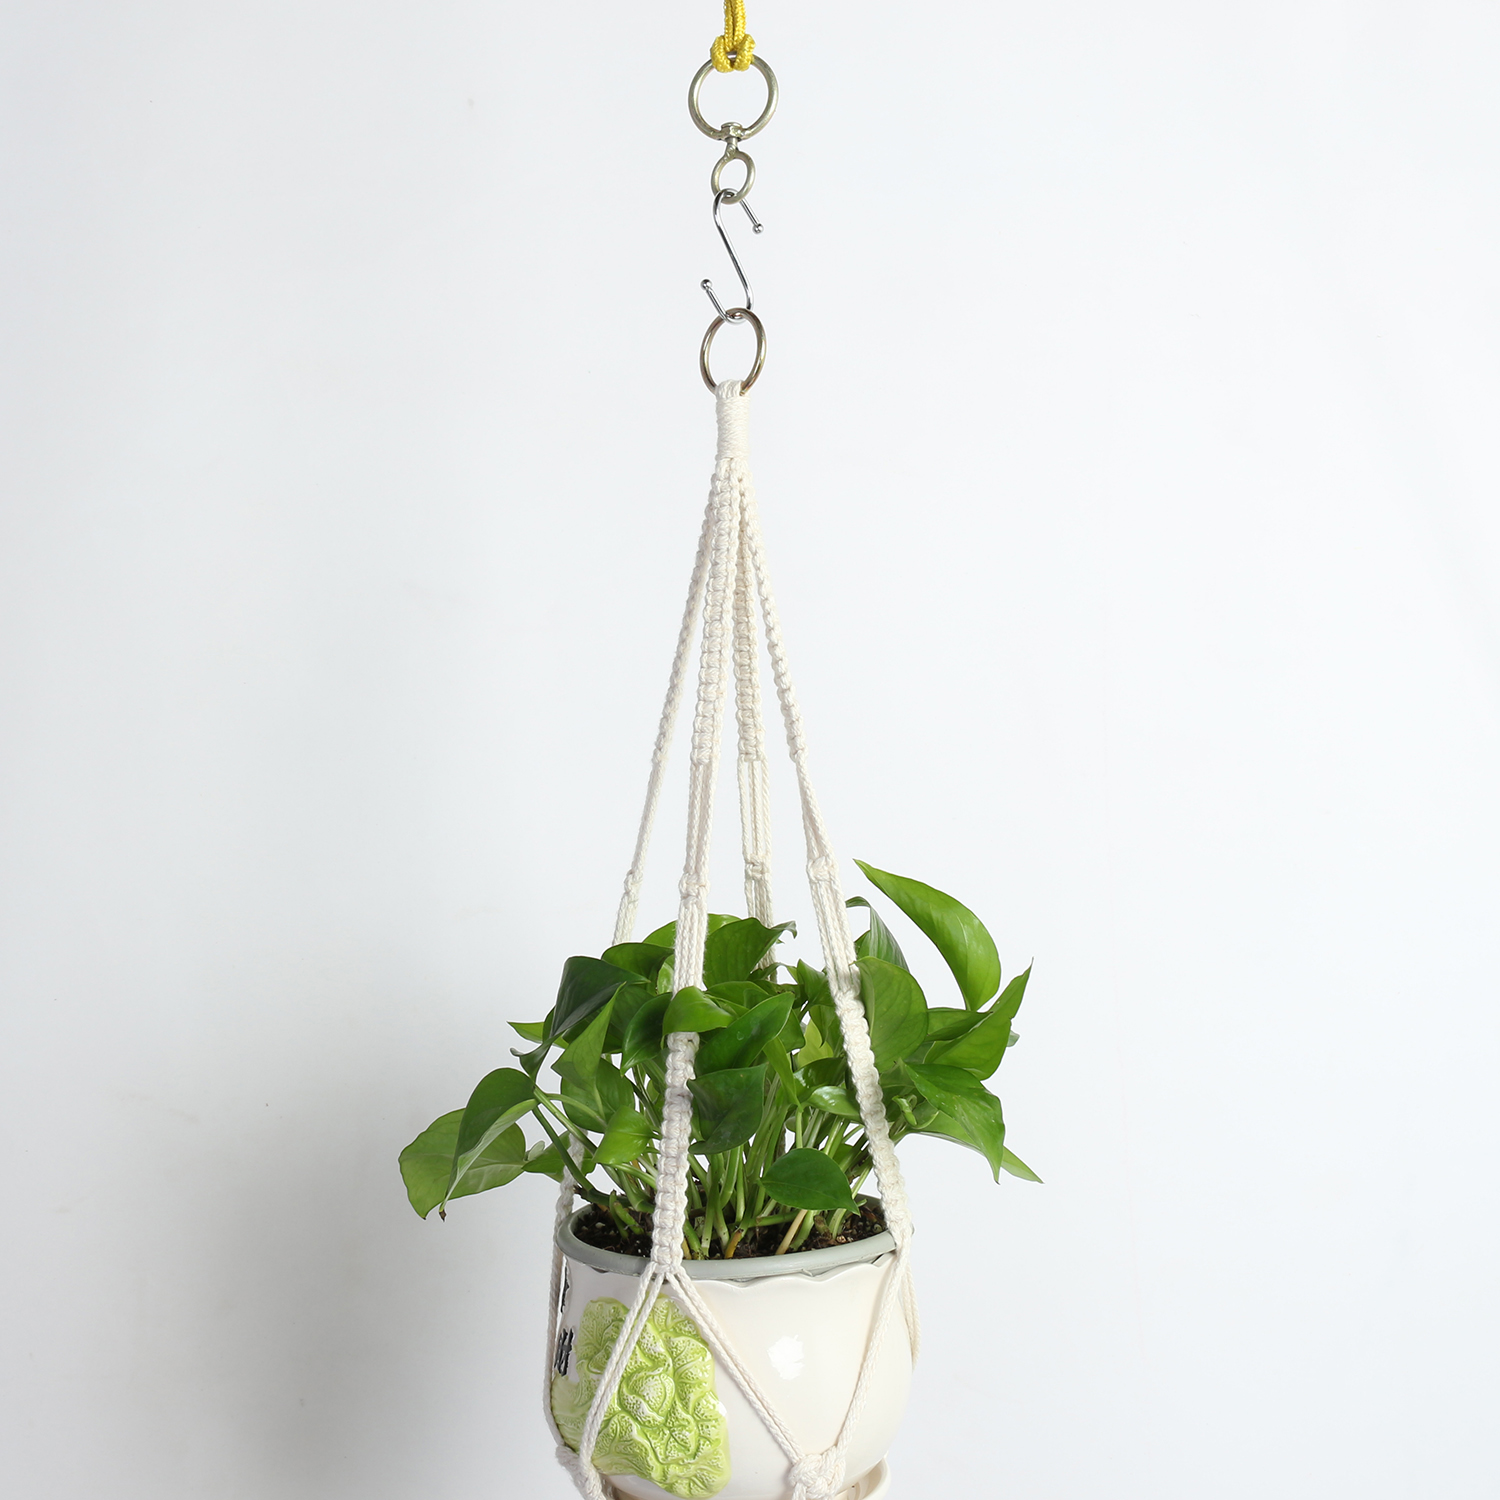 Image of: Double Tier Macrame Hanging Planter With Large Tassel Woven Interiors